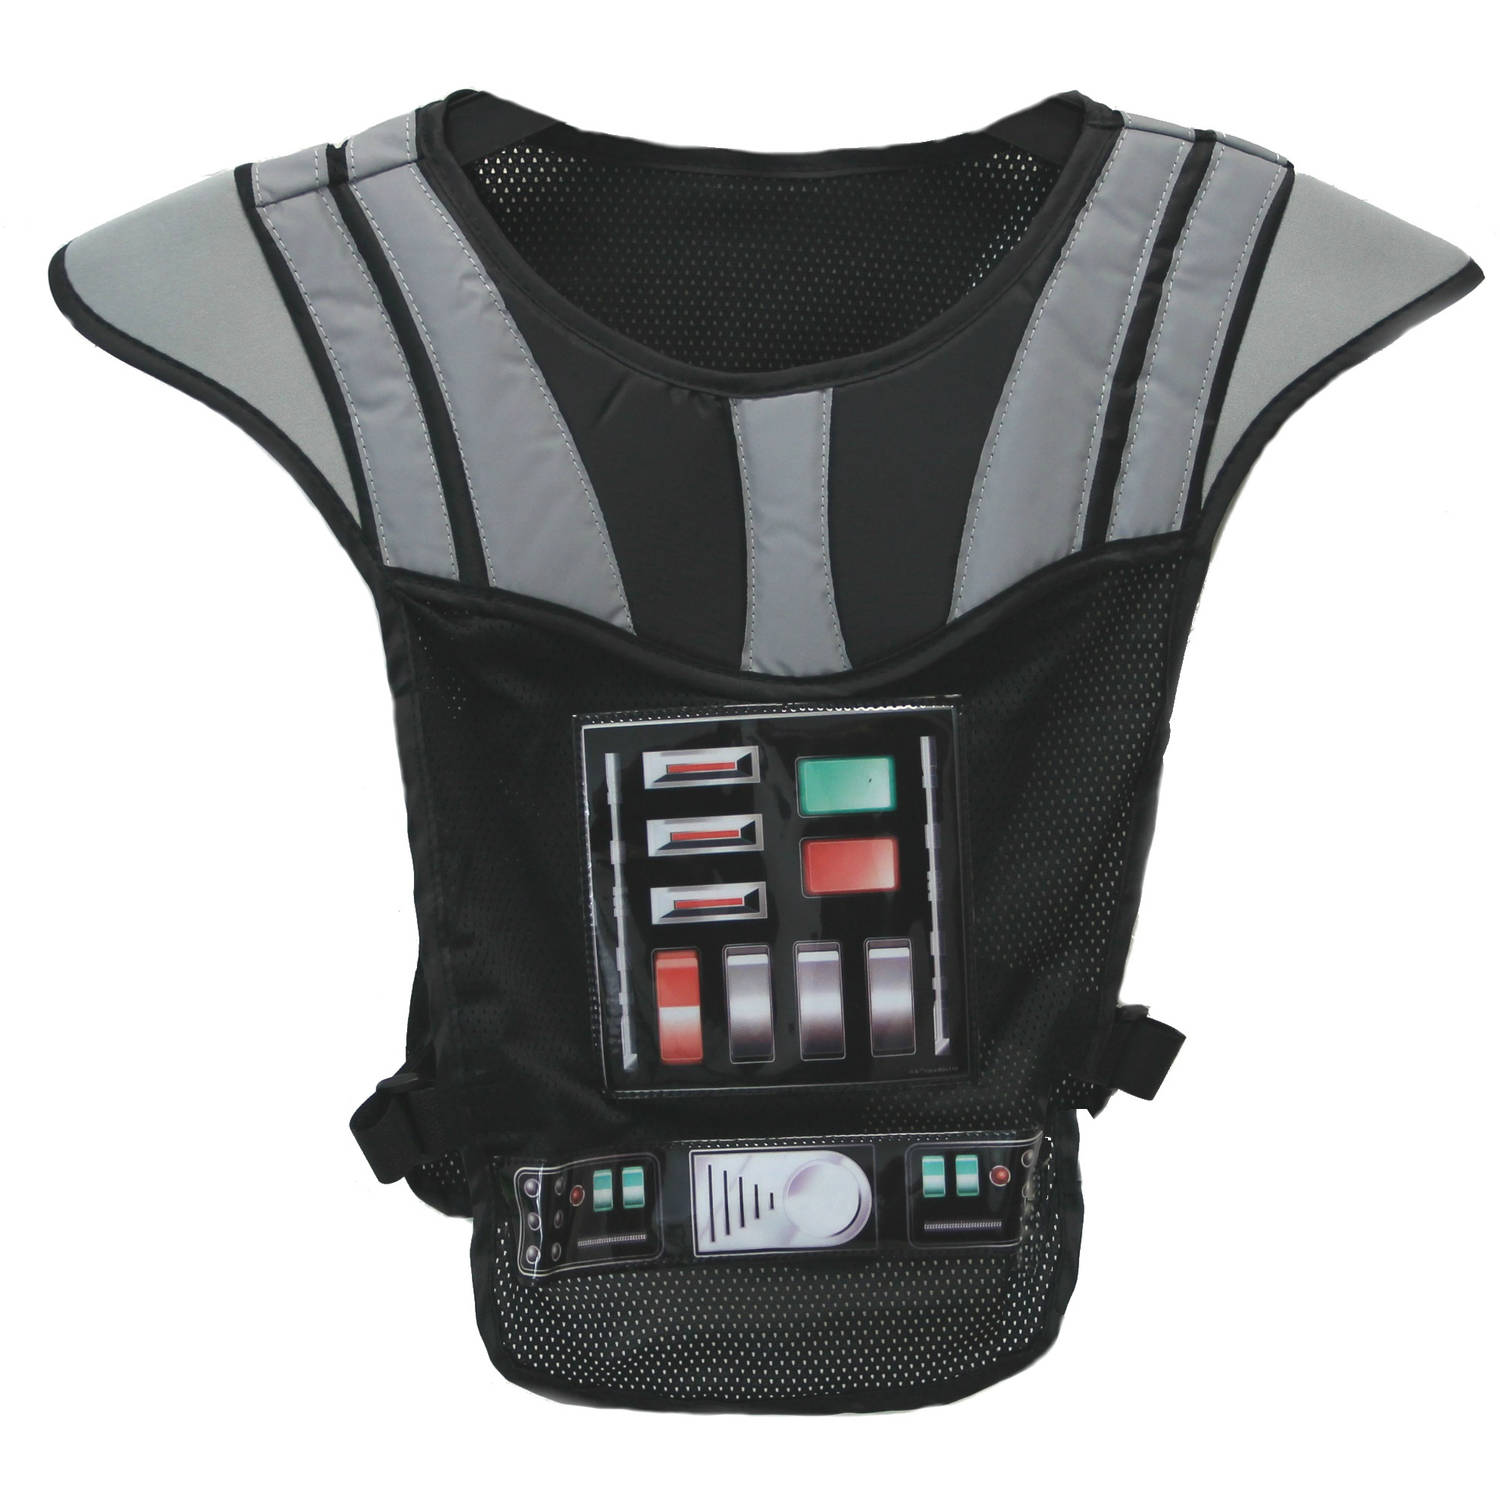 Bell Star Wars Darth Vader Reflective Safety Vest, Black